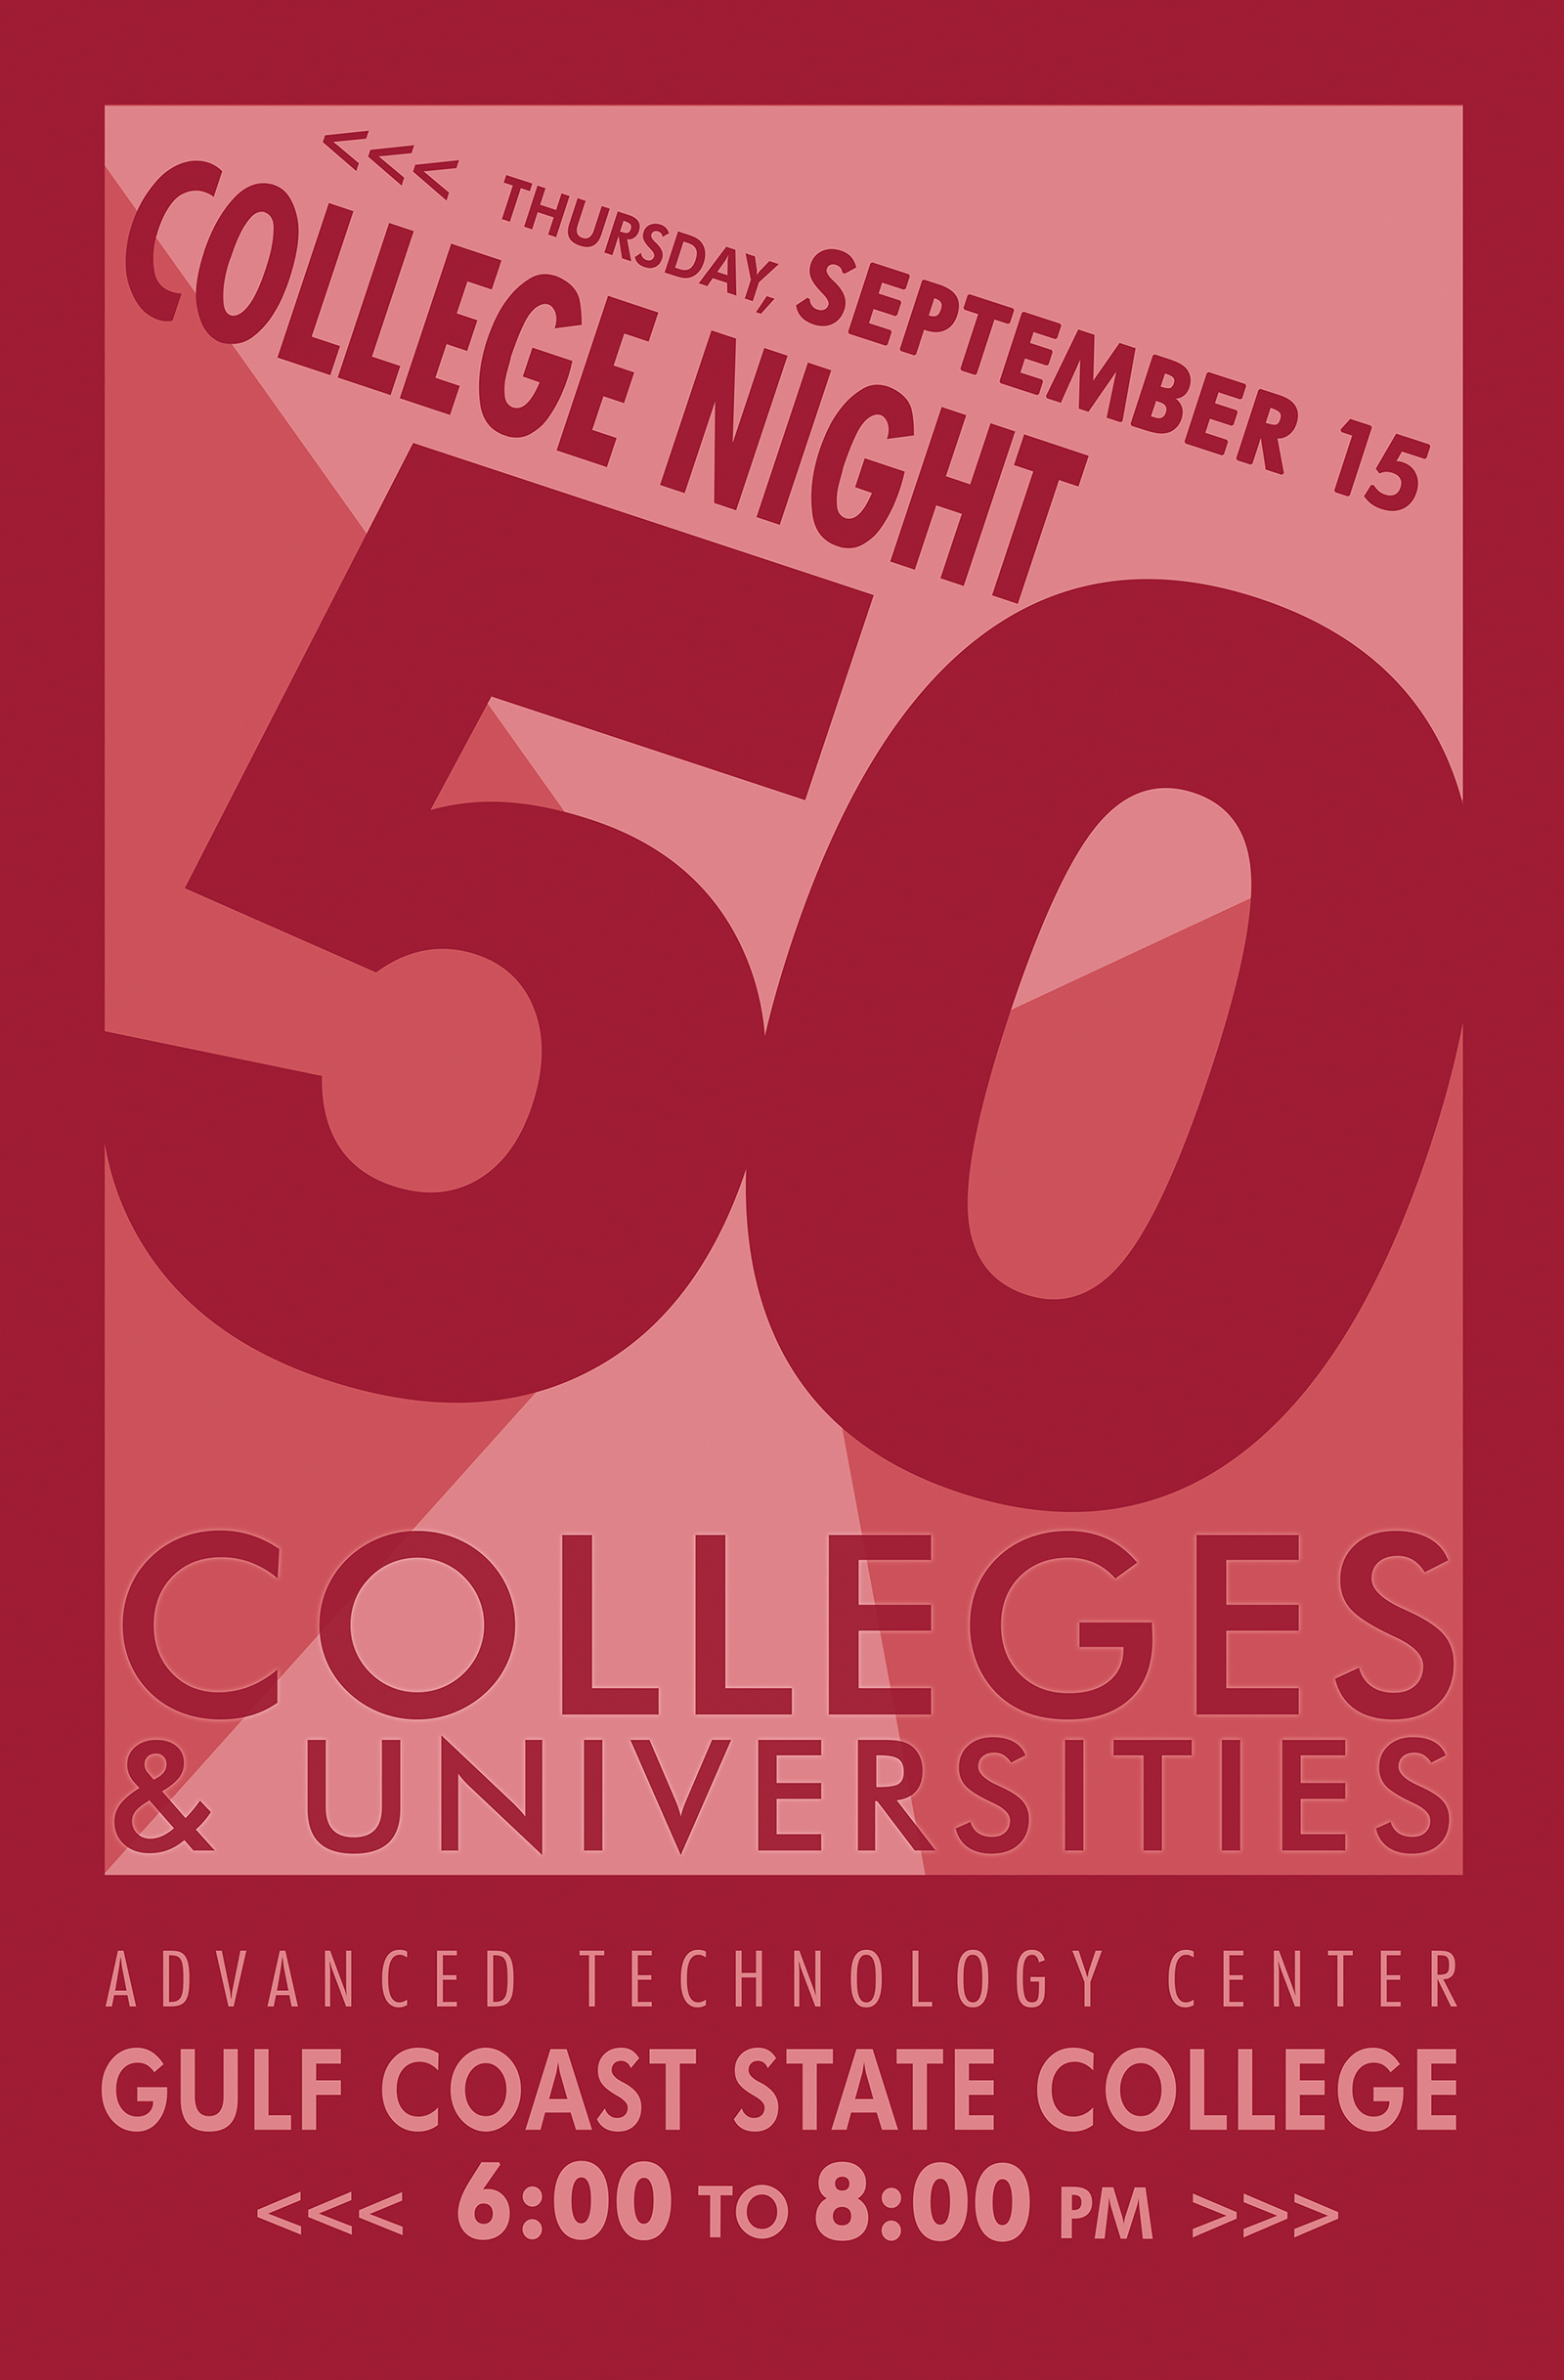 College Night Poster